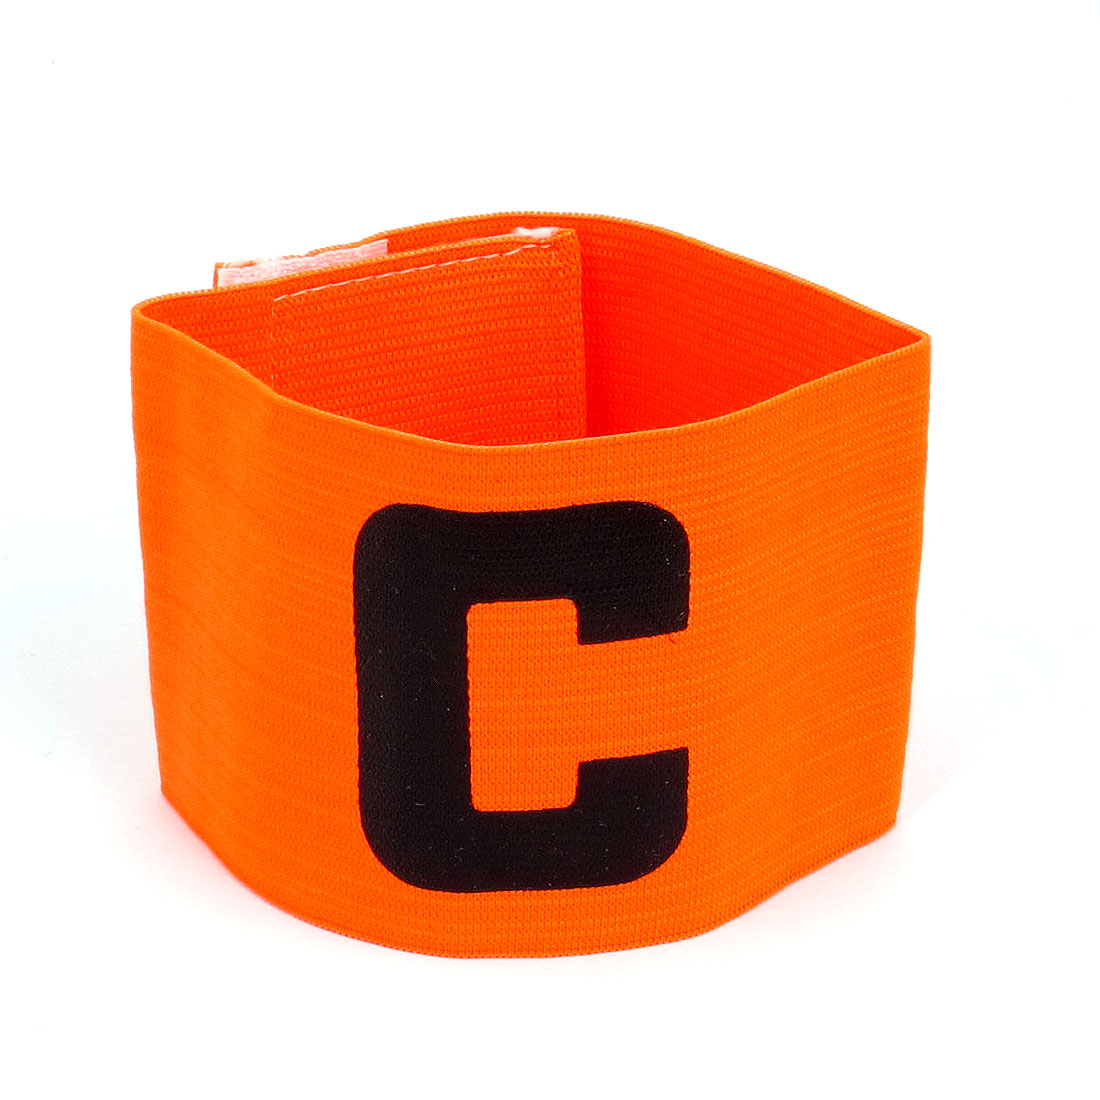 Hook Loop Fastener Letter C Printed Elastic Football Soccer Sports Captain Armband Orange